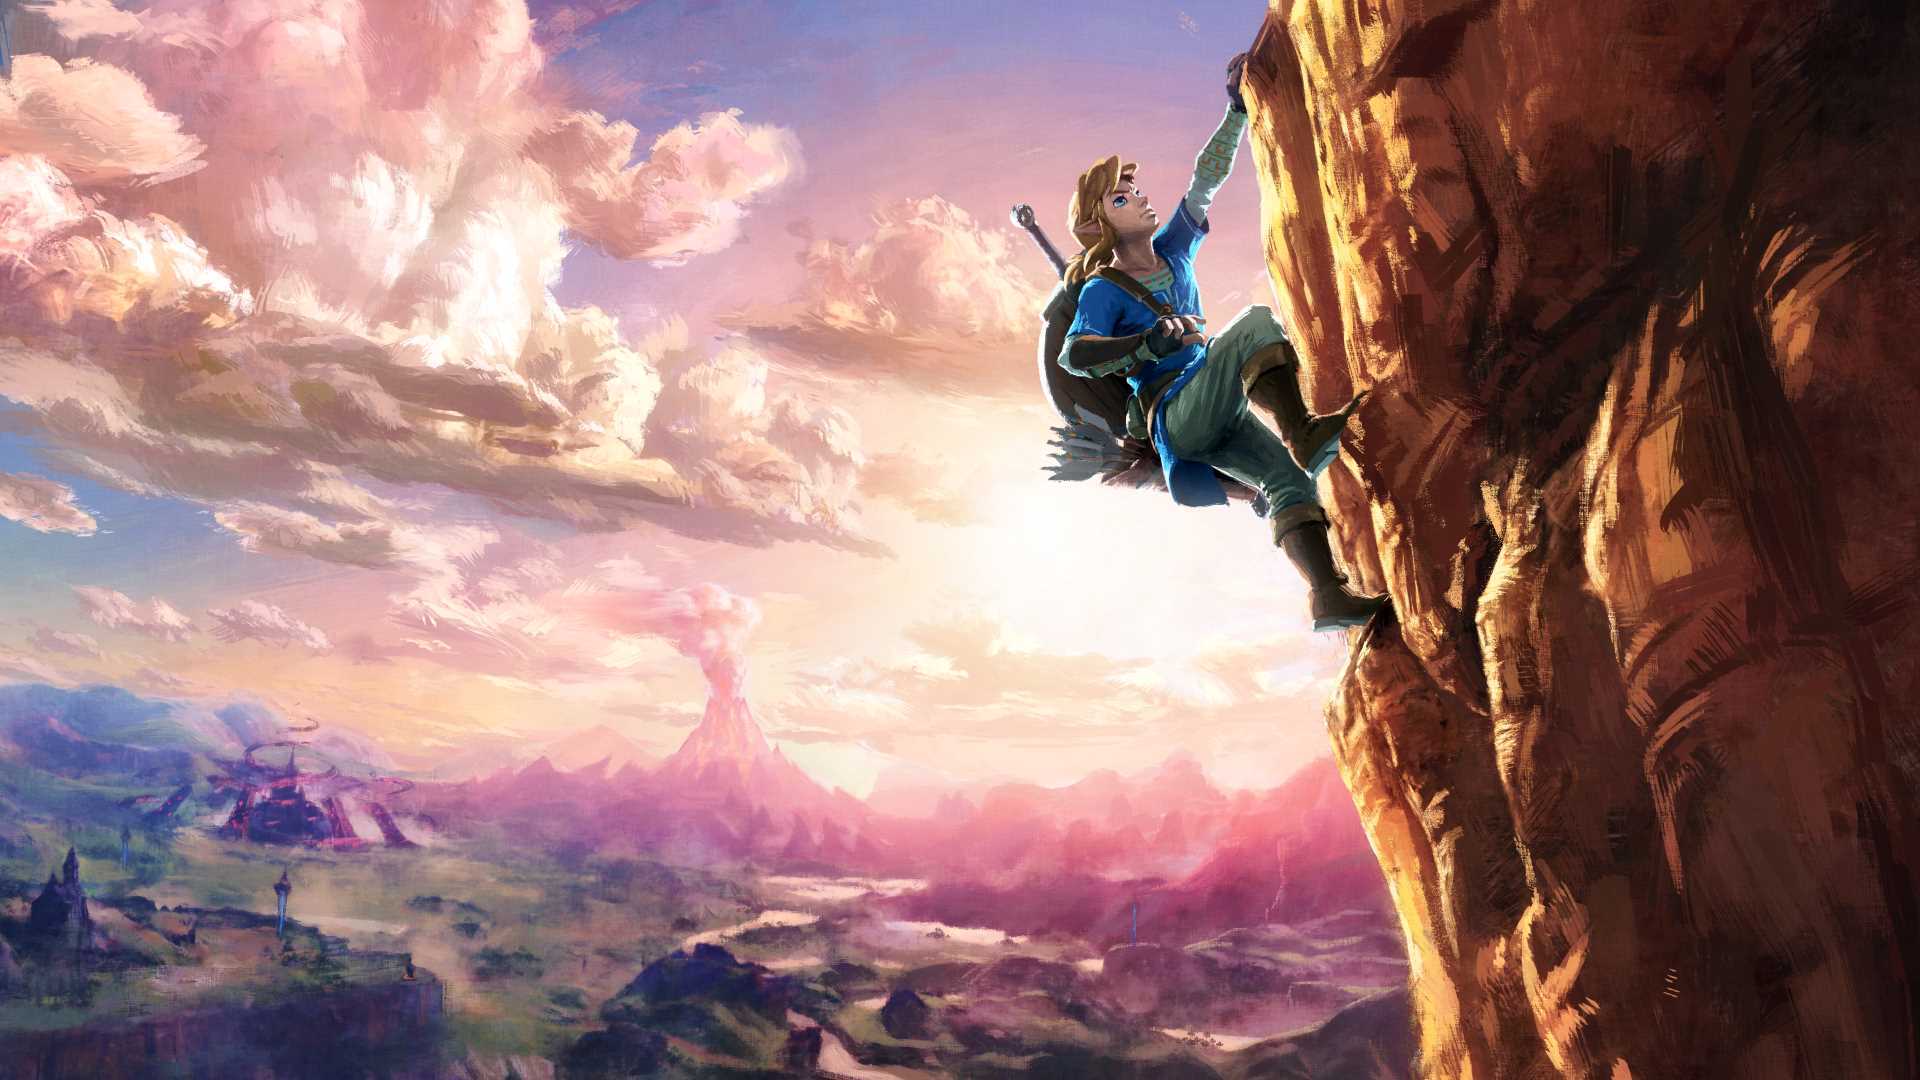 The Legend Of Zelda Breath Of The Wild Review Godisageek Com